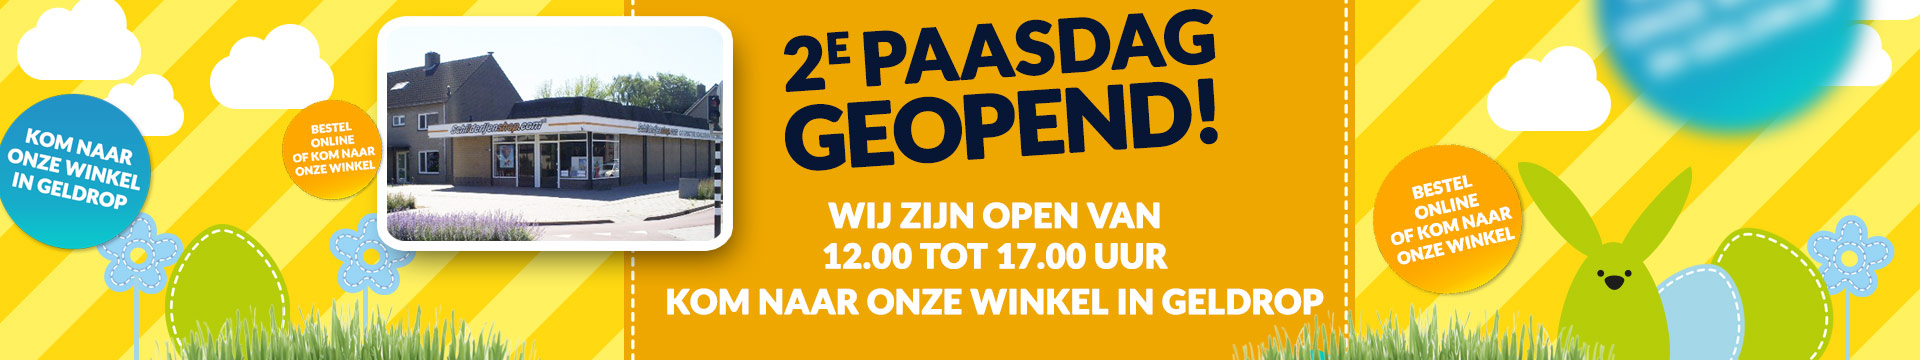 Extra geopend